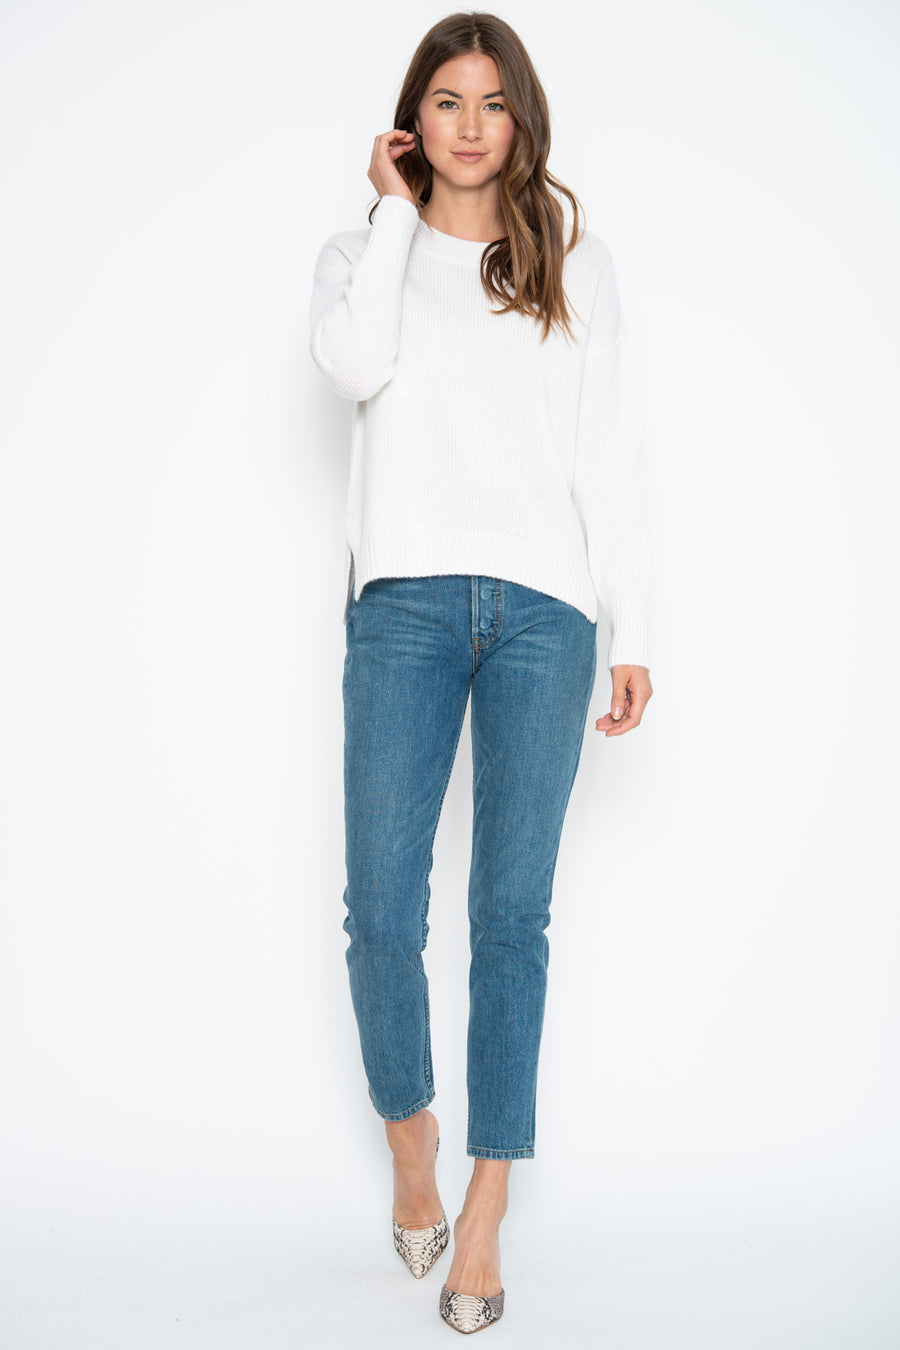 One Grey Day Lyle Cashmere Sweater in Ivory